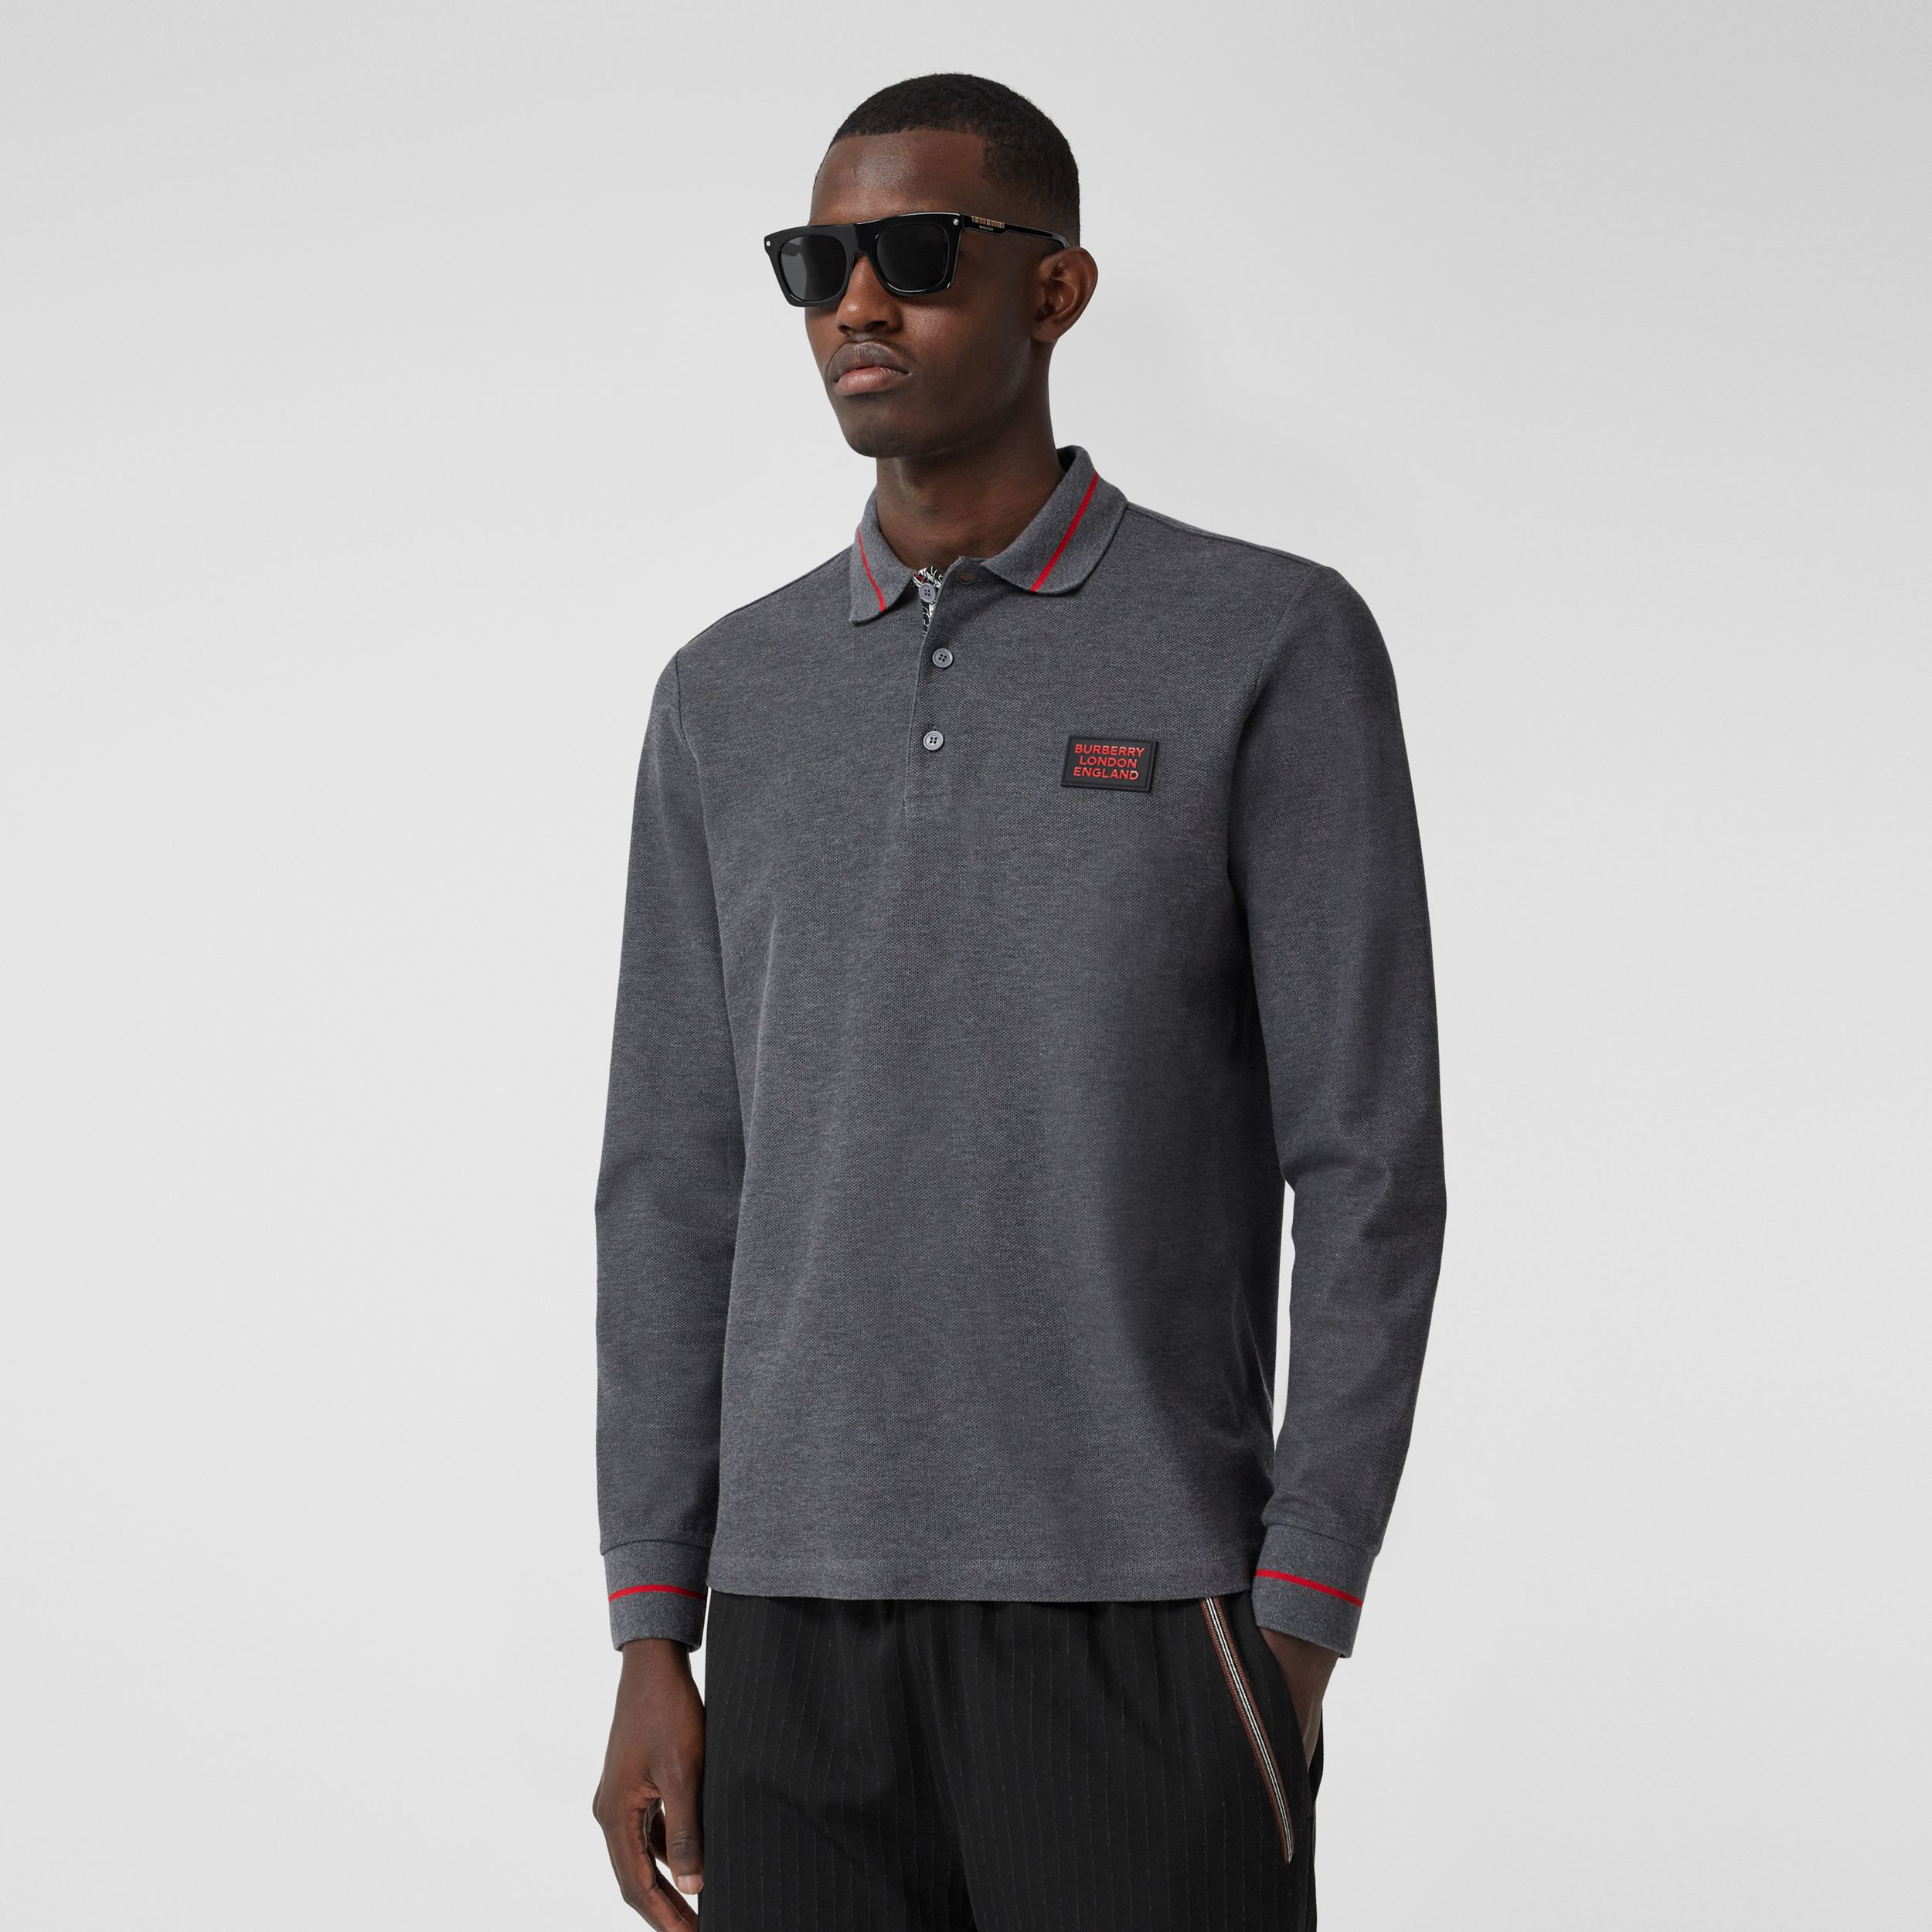 Long-sleeve Logo Appliqué Cotton Polo Shirt in Mid Grey Melange - Men | Burberry - 1